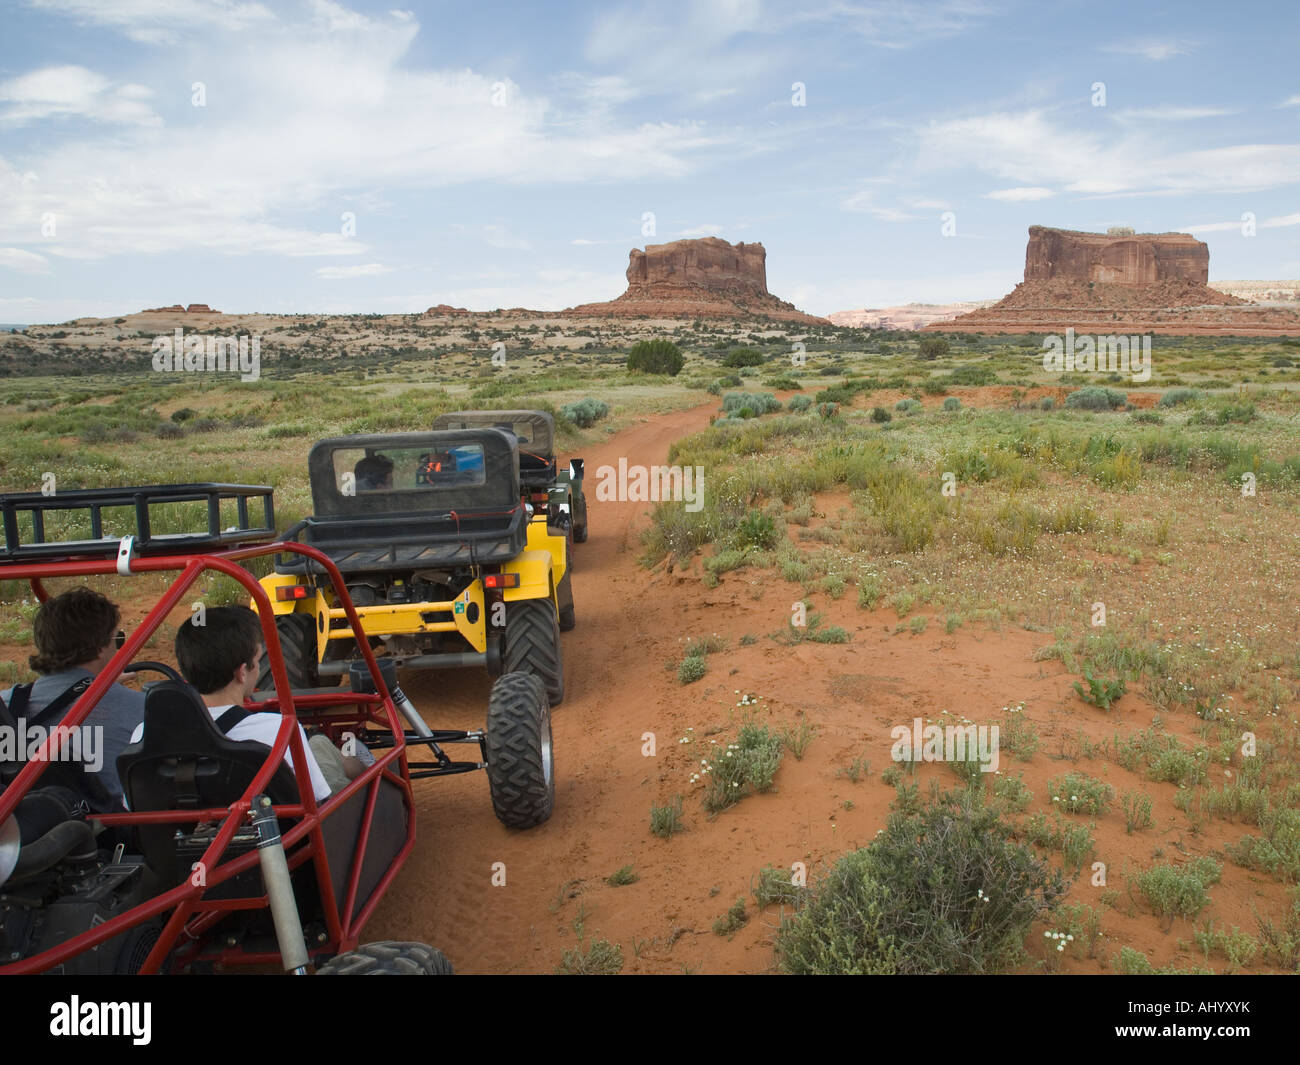 Off-road vehicles driving in desert - Stock Image